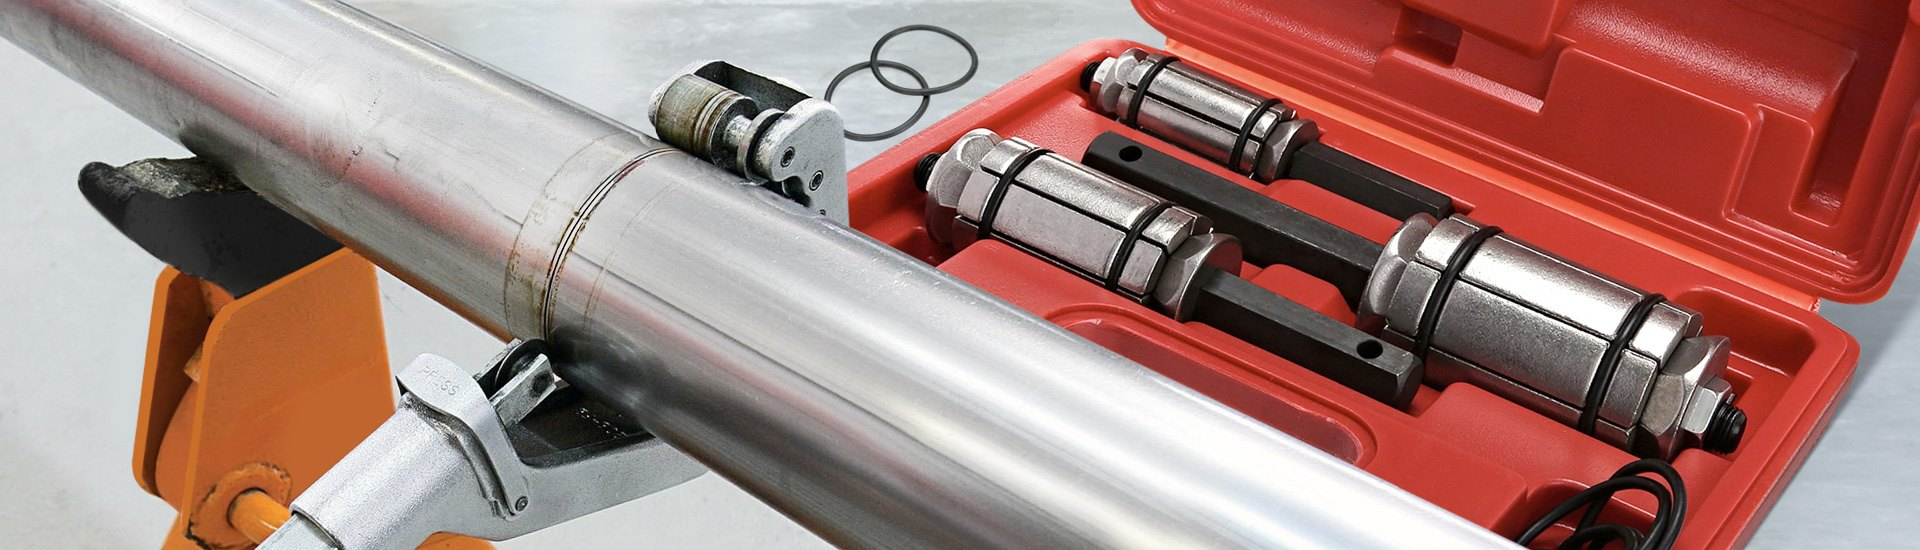 Exhaust System Service Tools